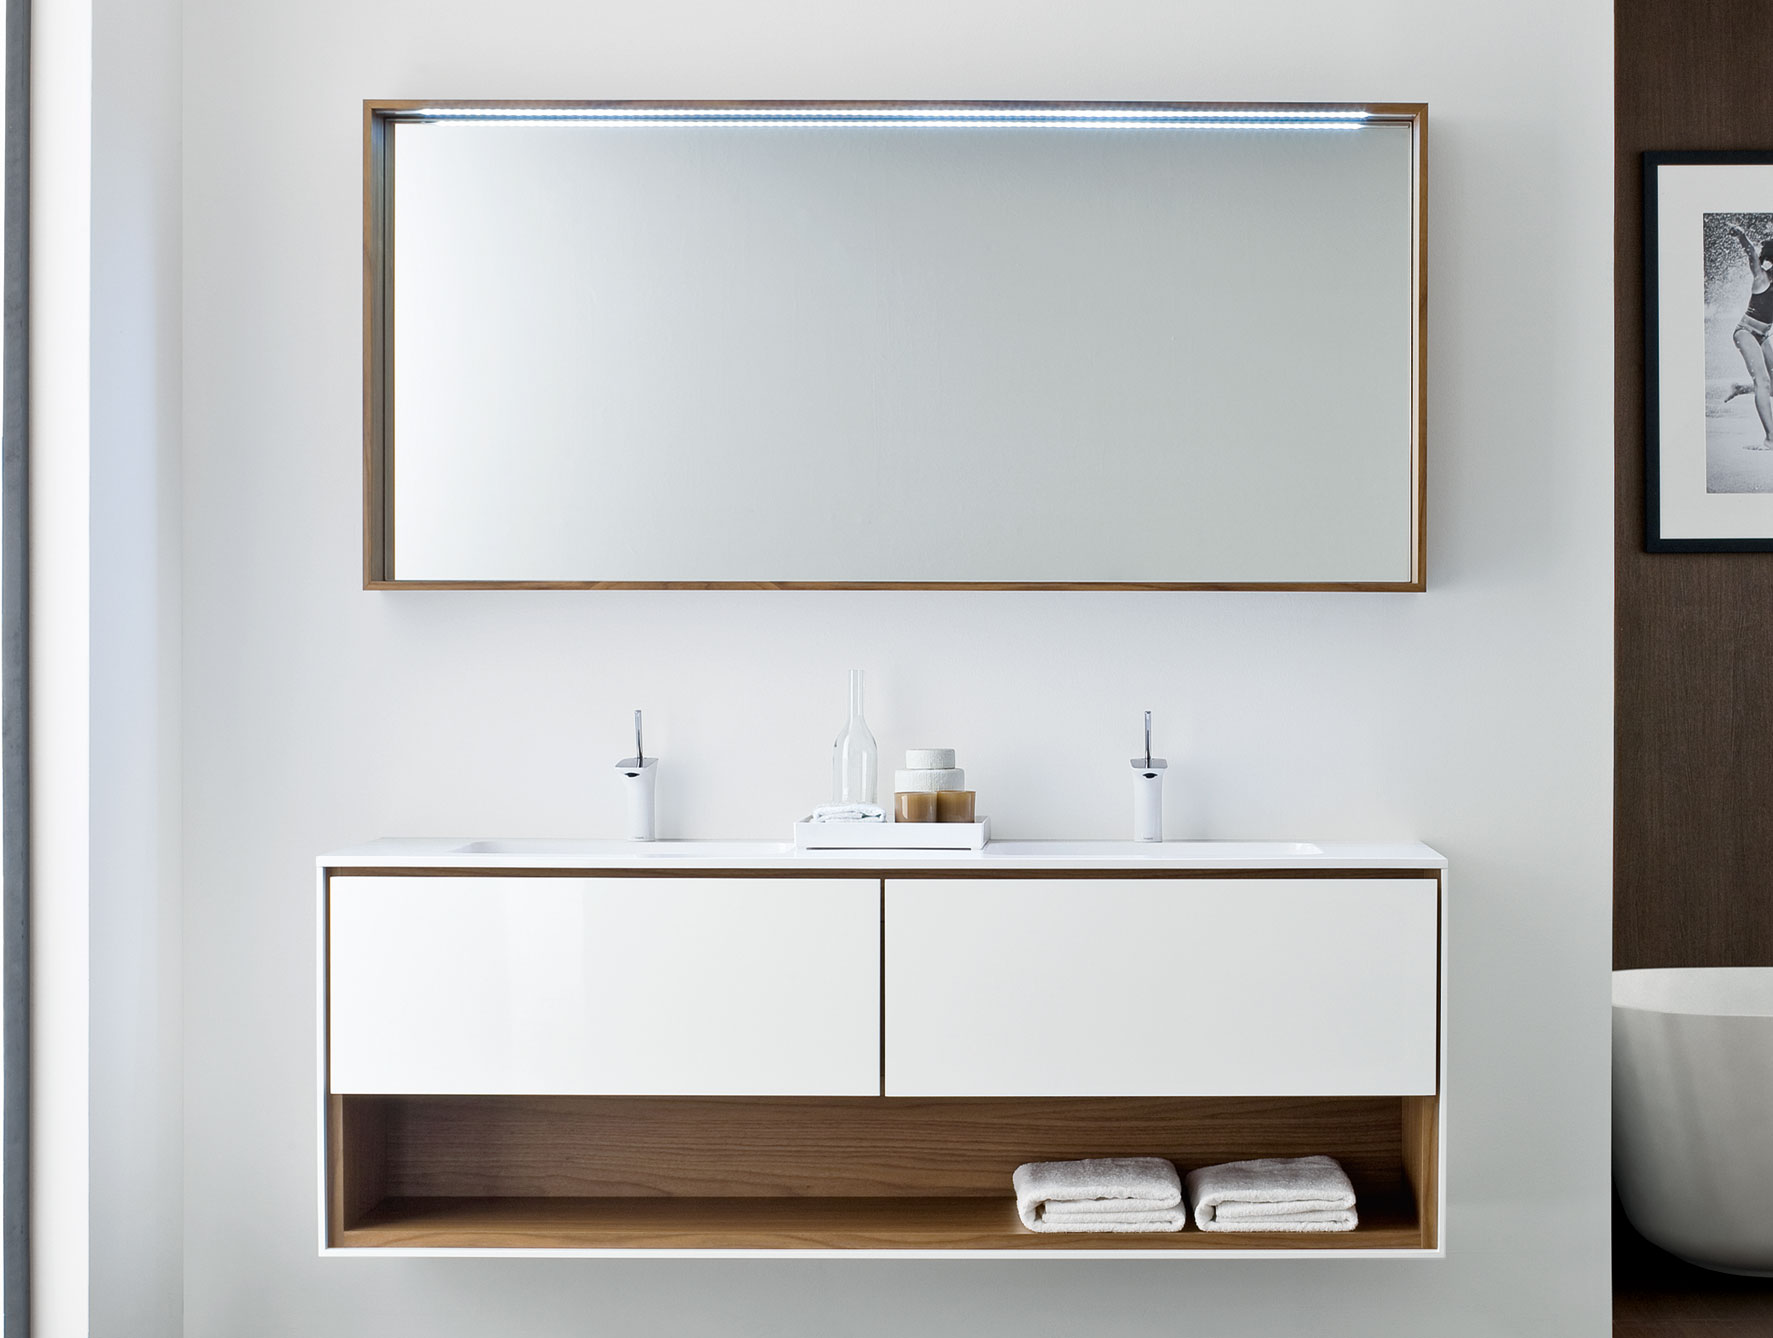 Bathroom vanity with storage from Nella Vetrina